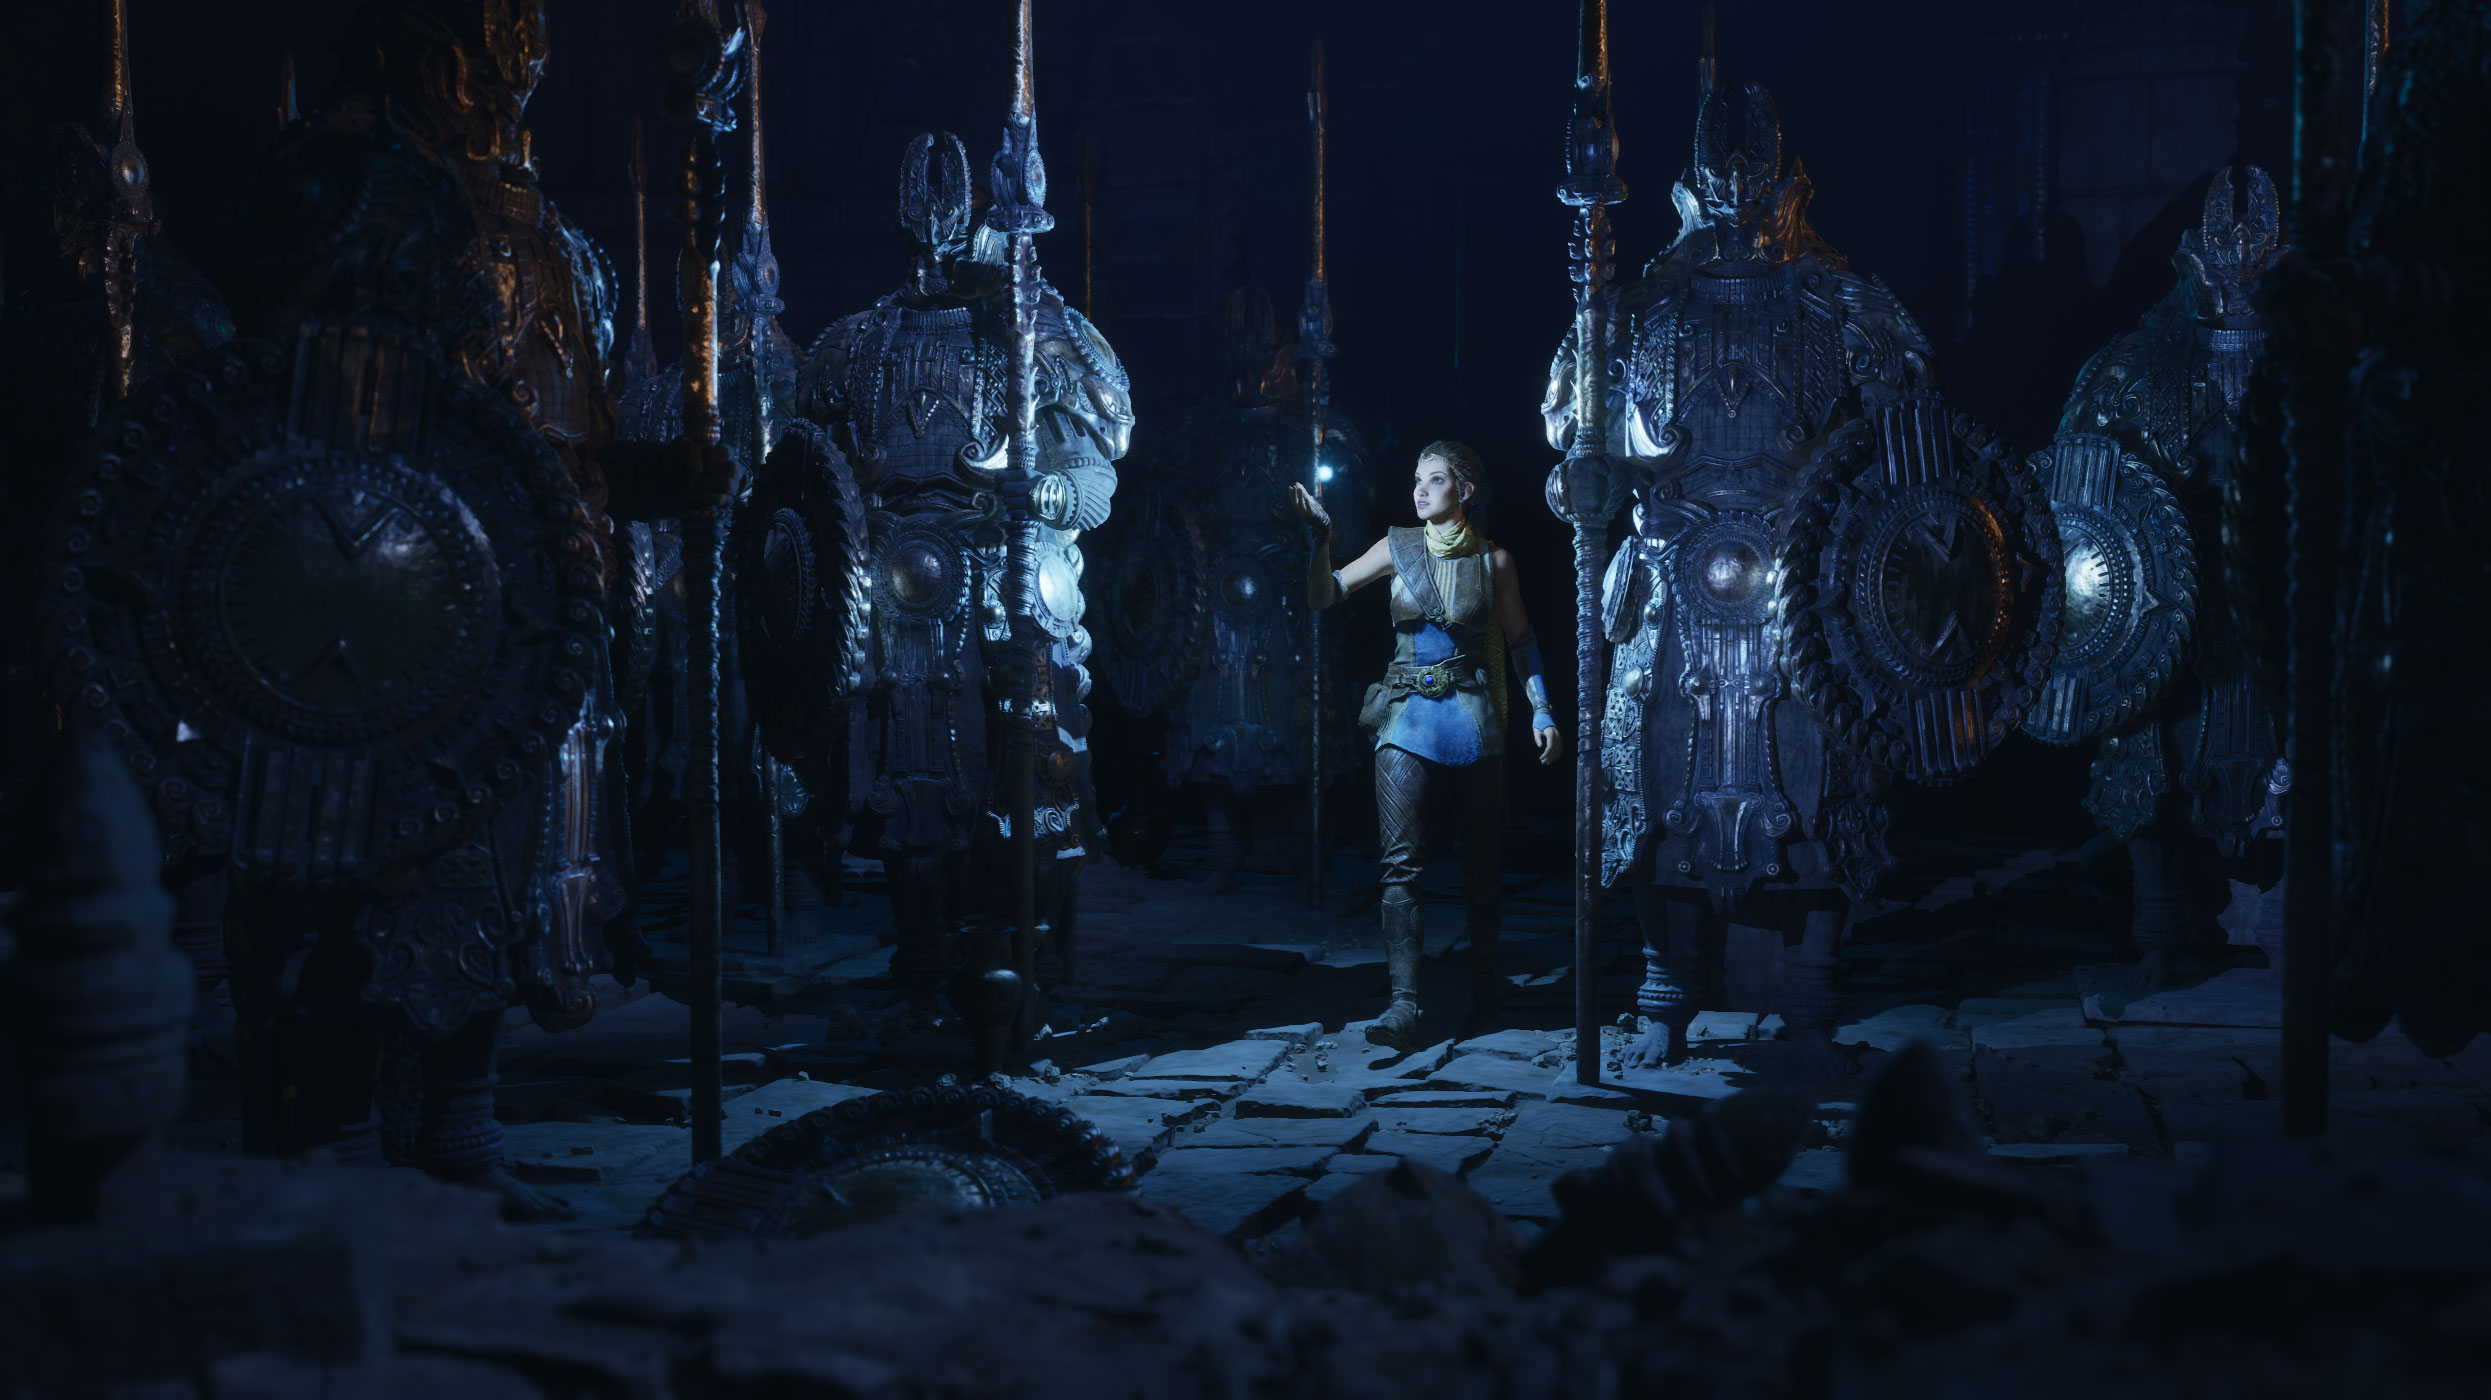 Epic reveals Unreal Engine 5 in PS5 demo